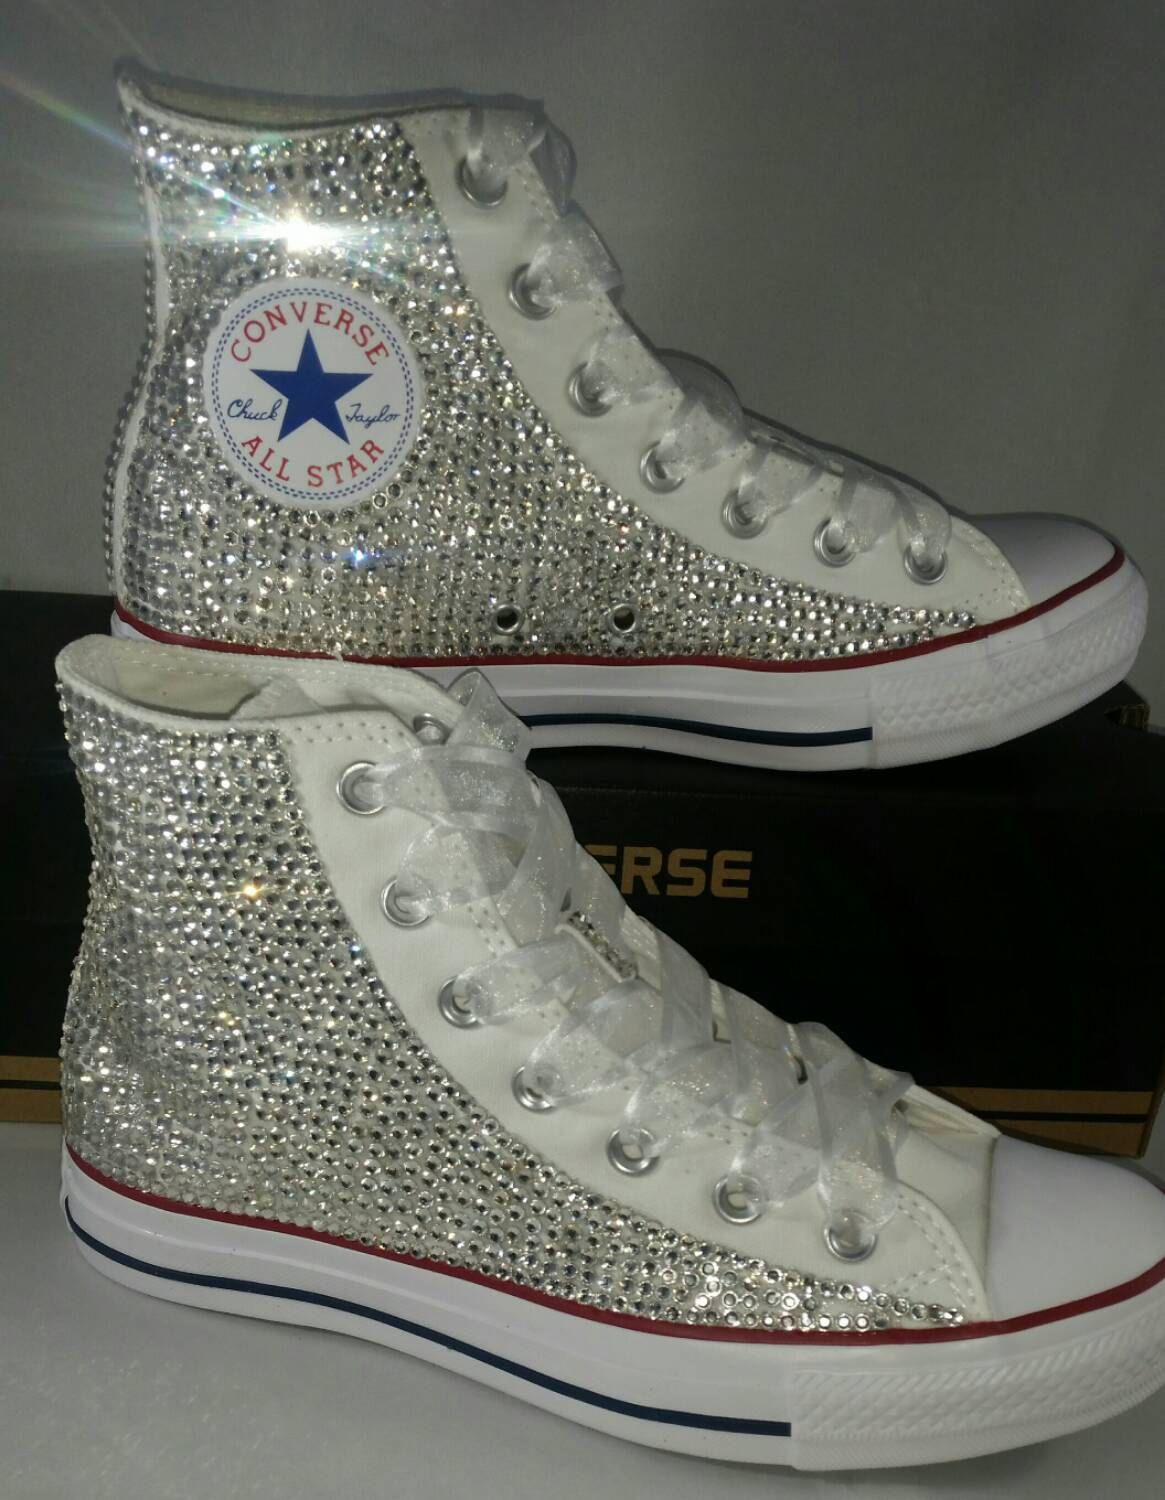 Full Bling Bridal Converse- Wedding Converse- Bling Pearls Custom Converse  Sneakers- Personalized Chuck Taylors- AllStar Converse Sneakers by ... fb0f46840